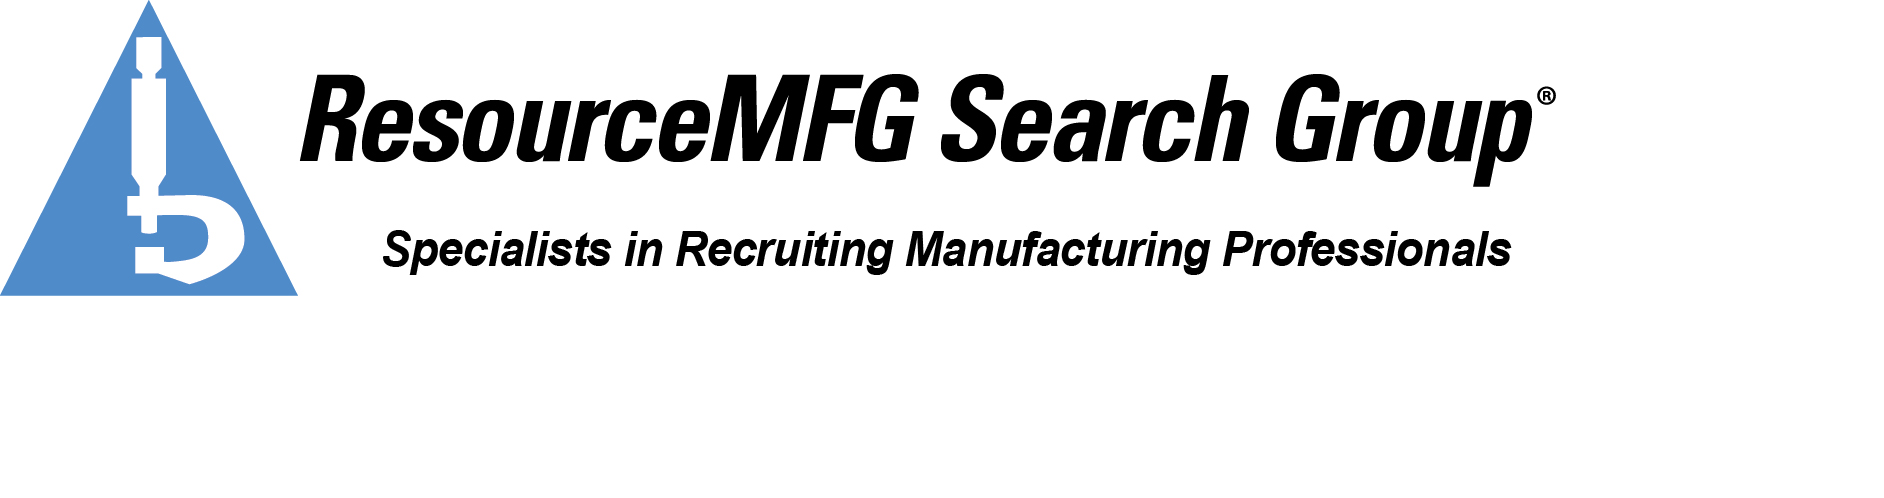 http://www.jobzipp.com/company/resourcemfg-search-group